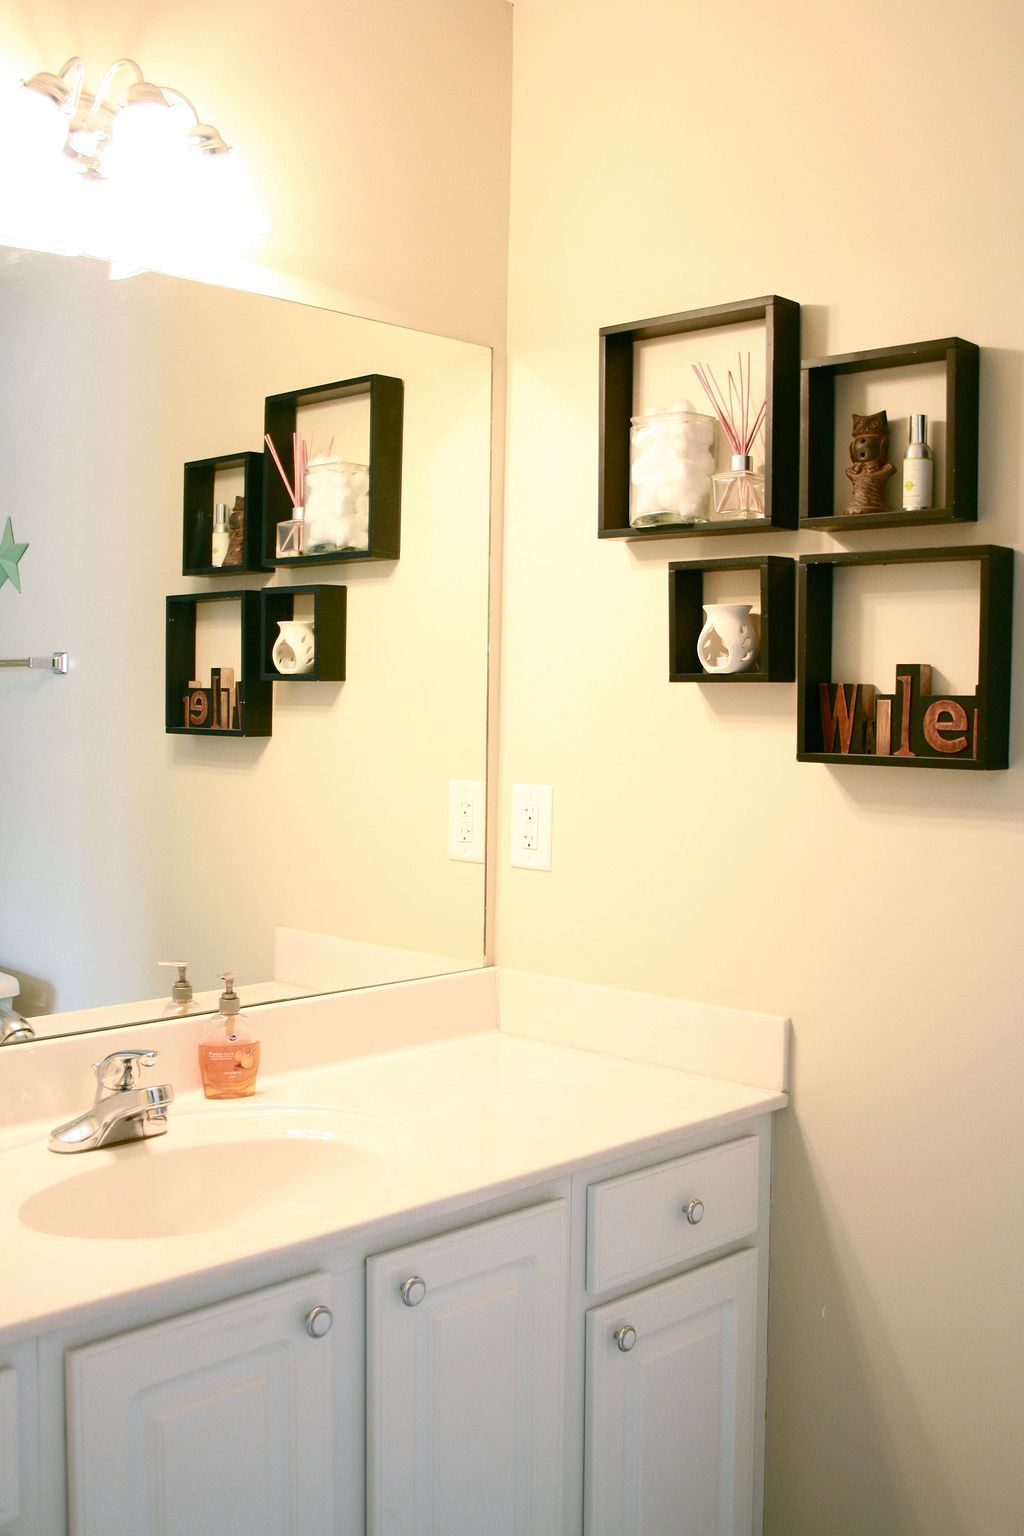 40+ Inspiring Display Shelf Ideas To Spruce Up The Walls | Display ...